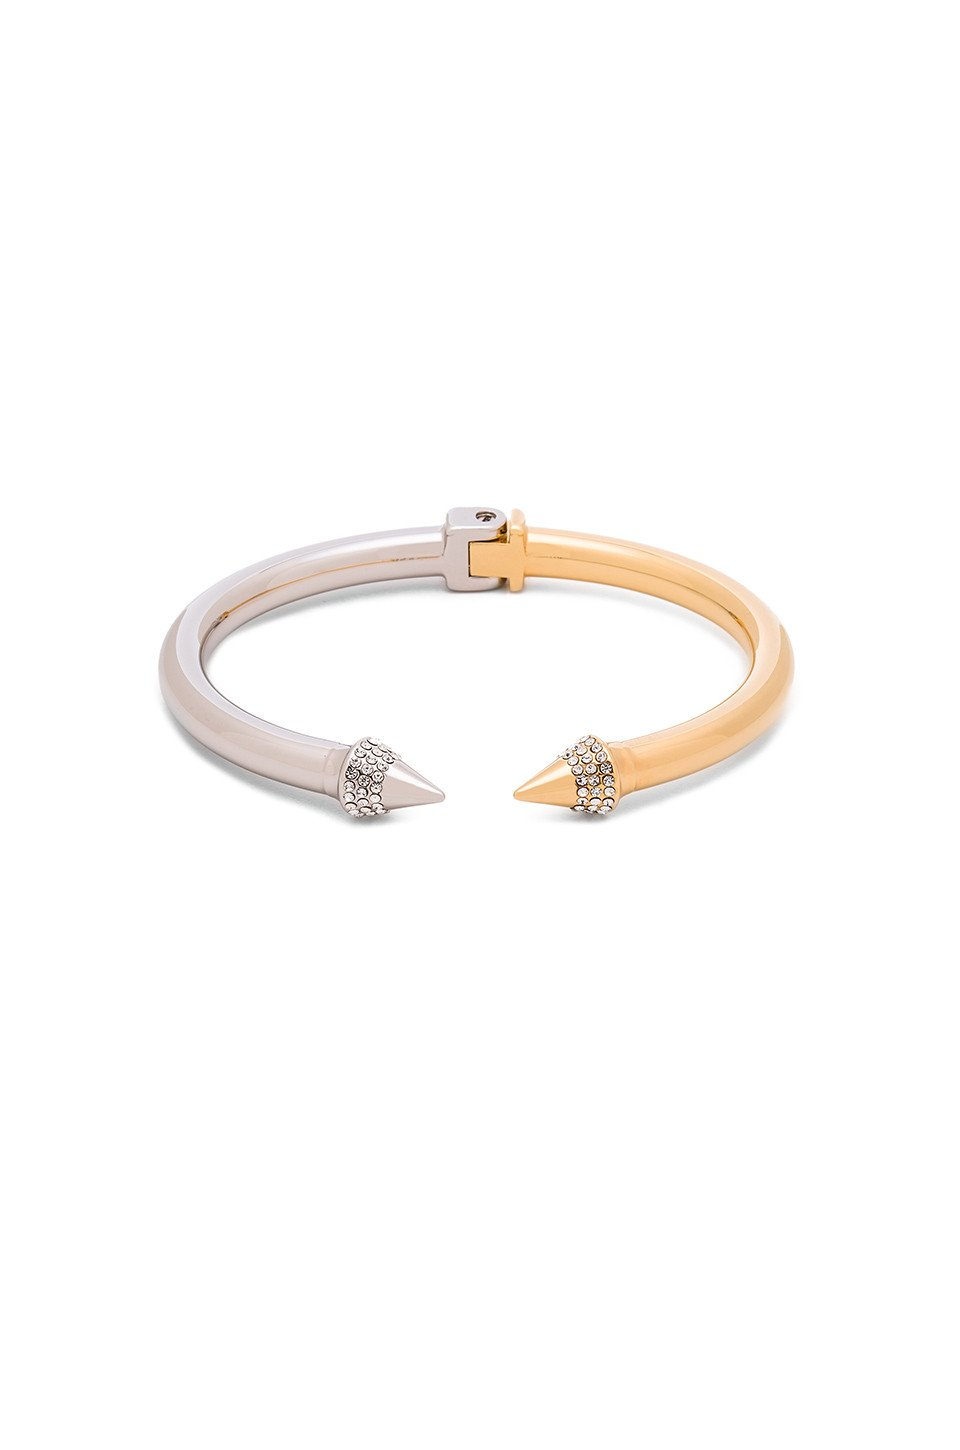 Mini Titan Split Two-Tone Bracelet - Kustom Label - 1